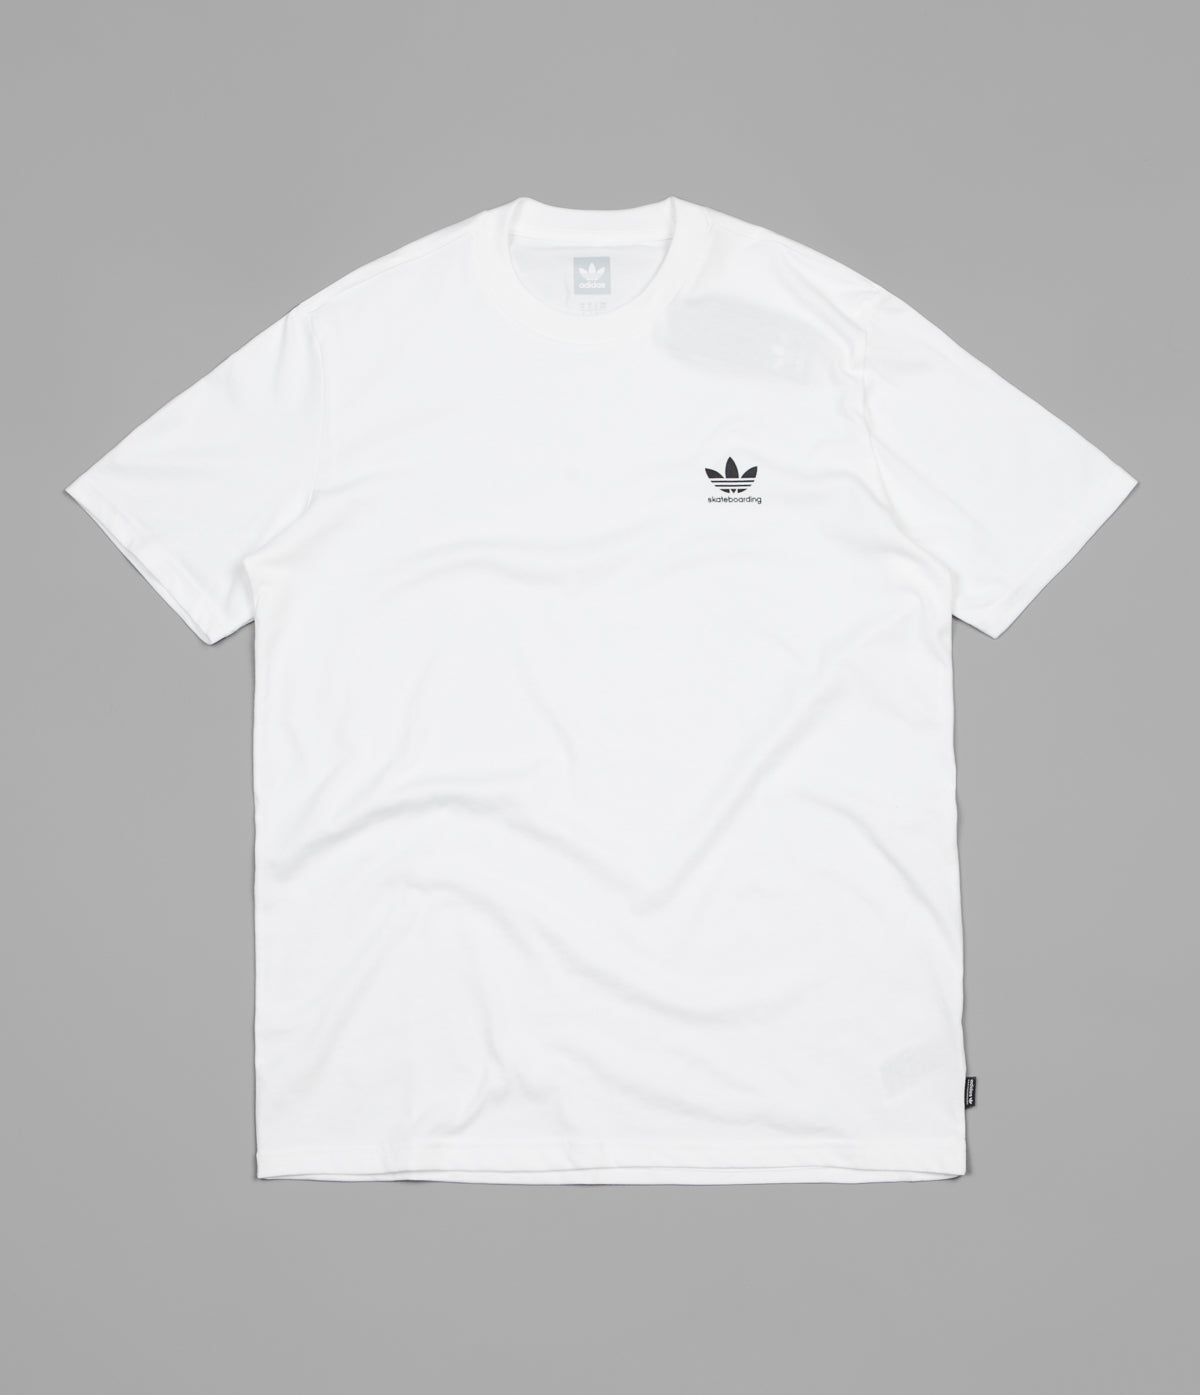 Adidas Clima 2.0 T-Shirt - White / Black